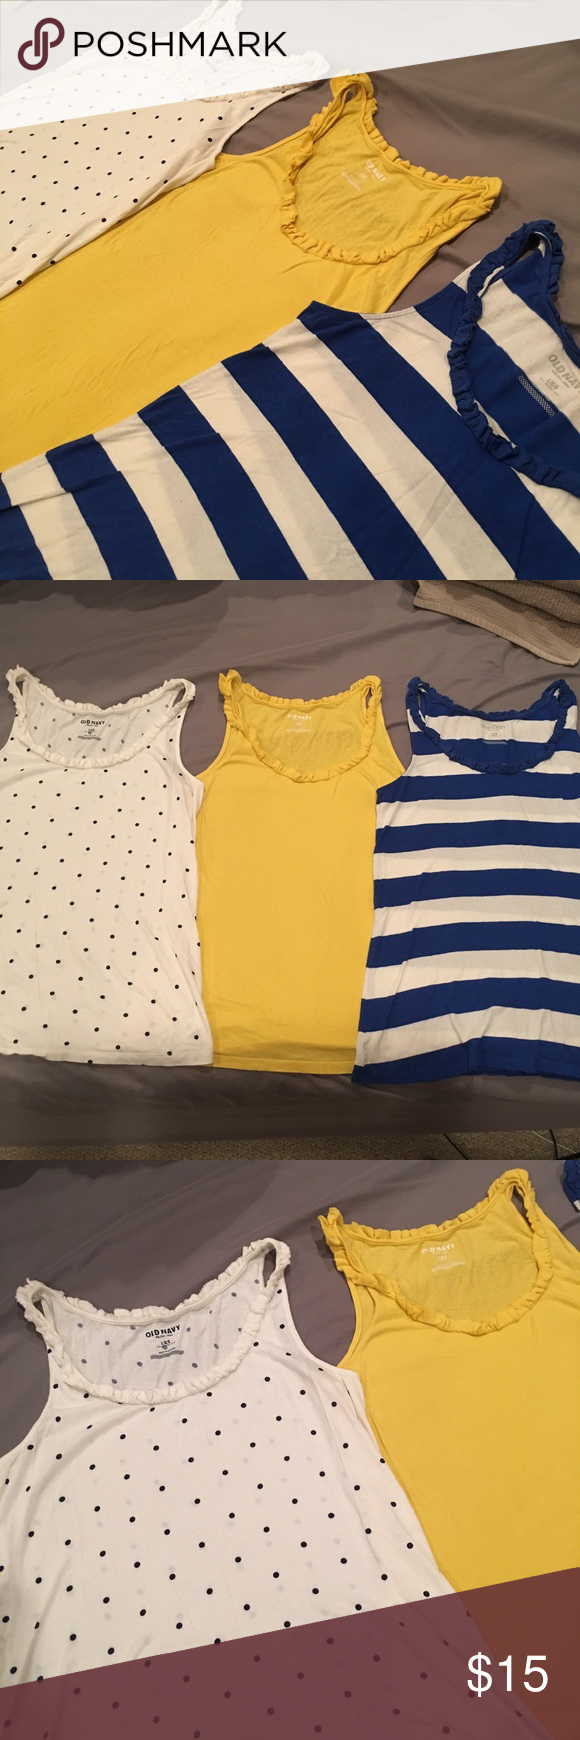 Lot of 3 Old Navy Tank Tops Super Cute tops size L. Some Slight wash wear but still in great shape Old Navy Tops Tank Tops